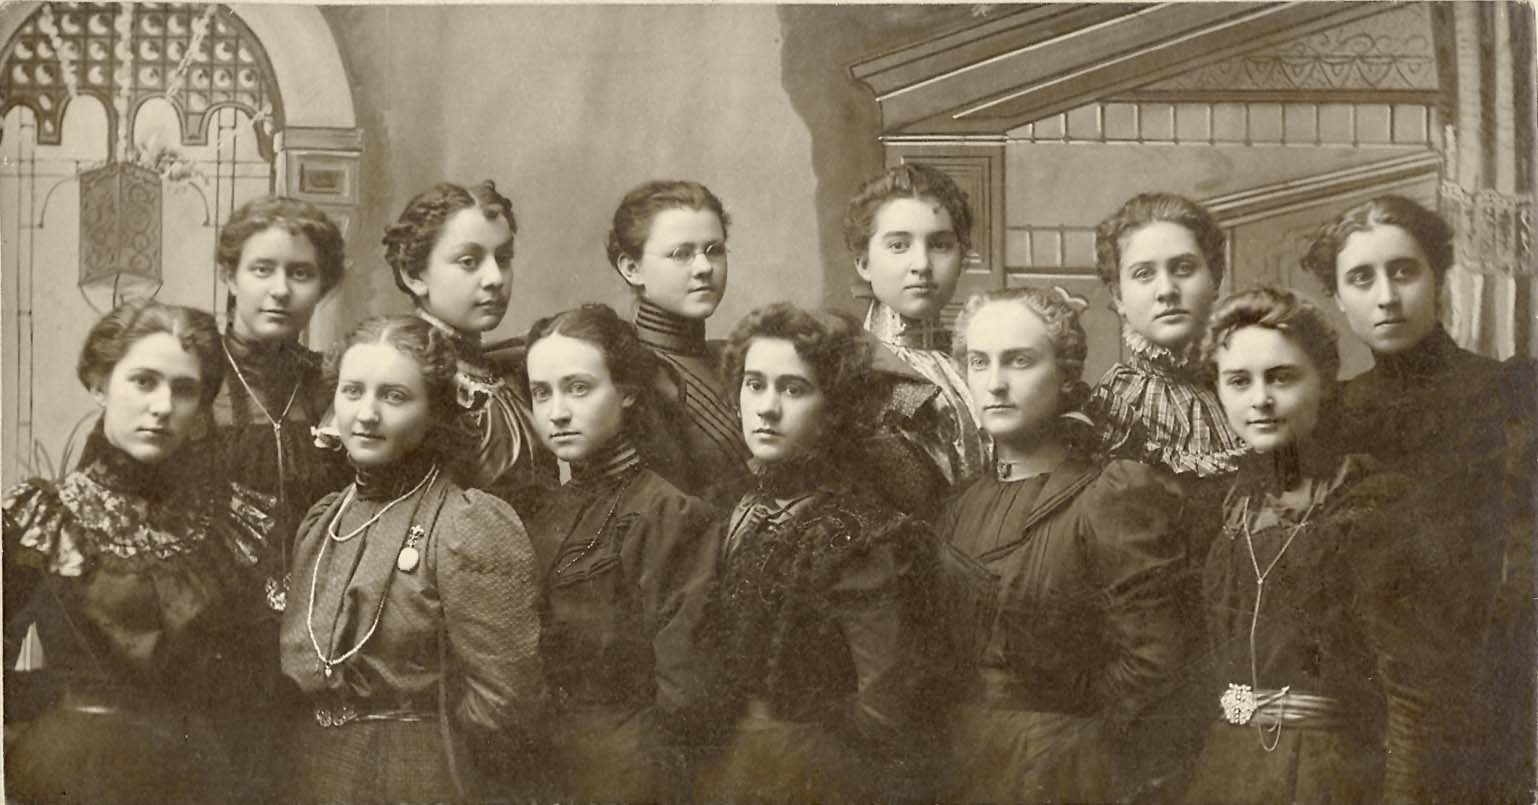 Is this Group Photo from Victor High School 1898?